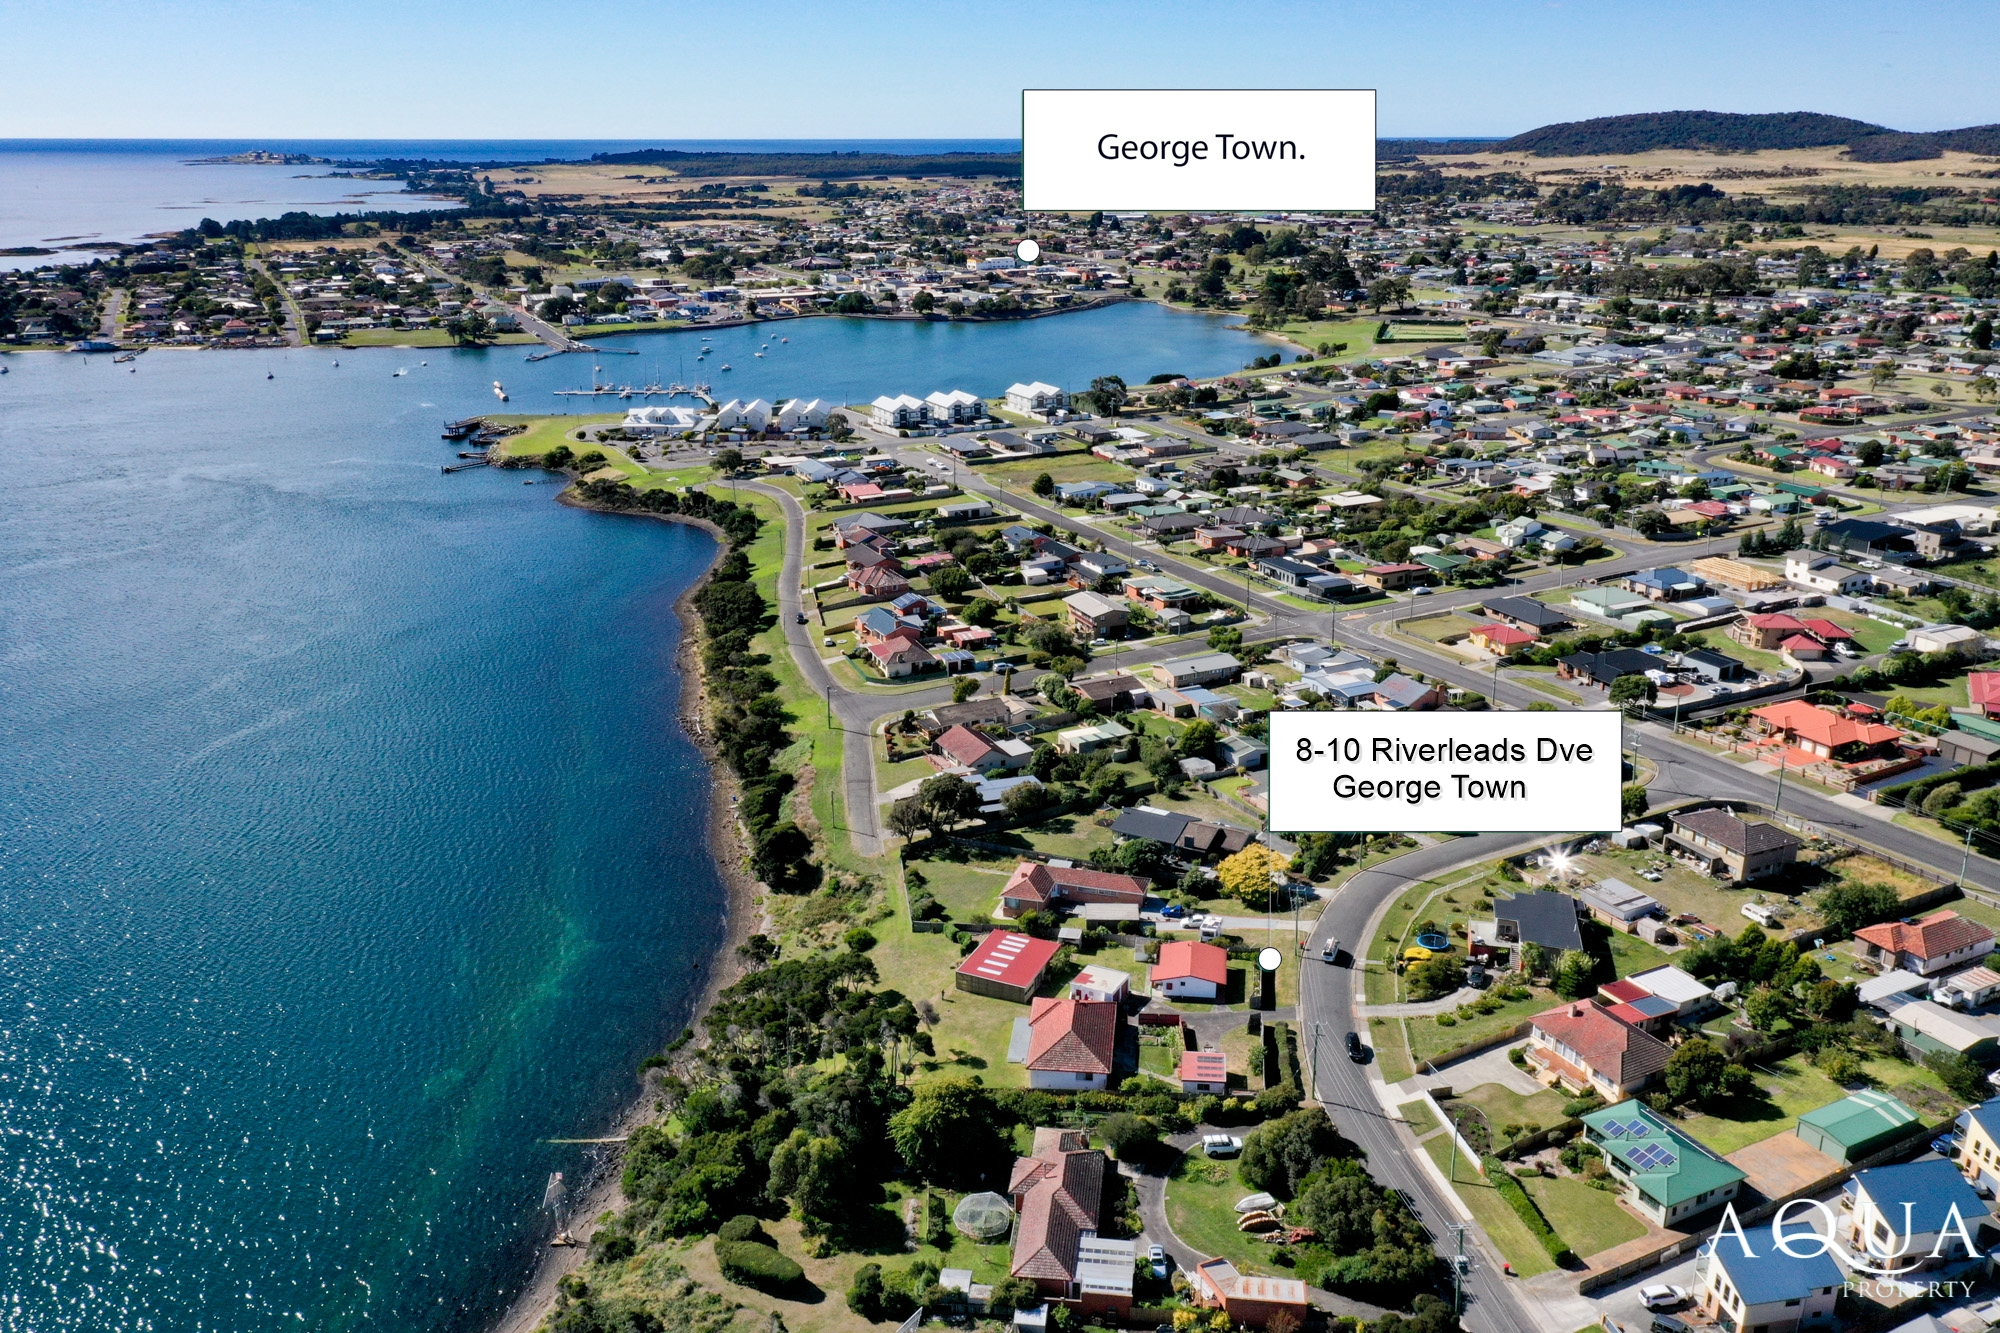 8-10 Riverleads Drive GEORGE TOWN